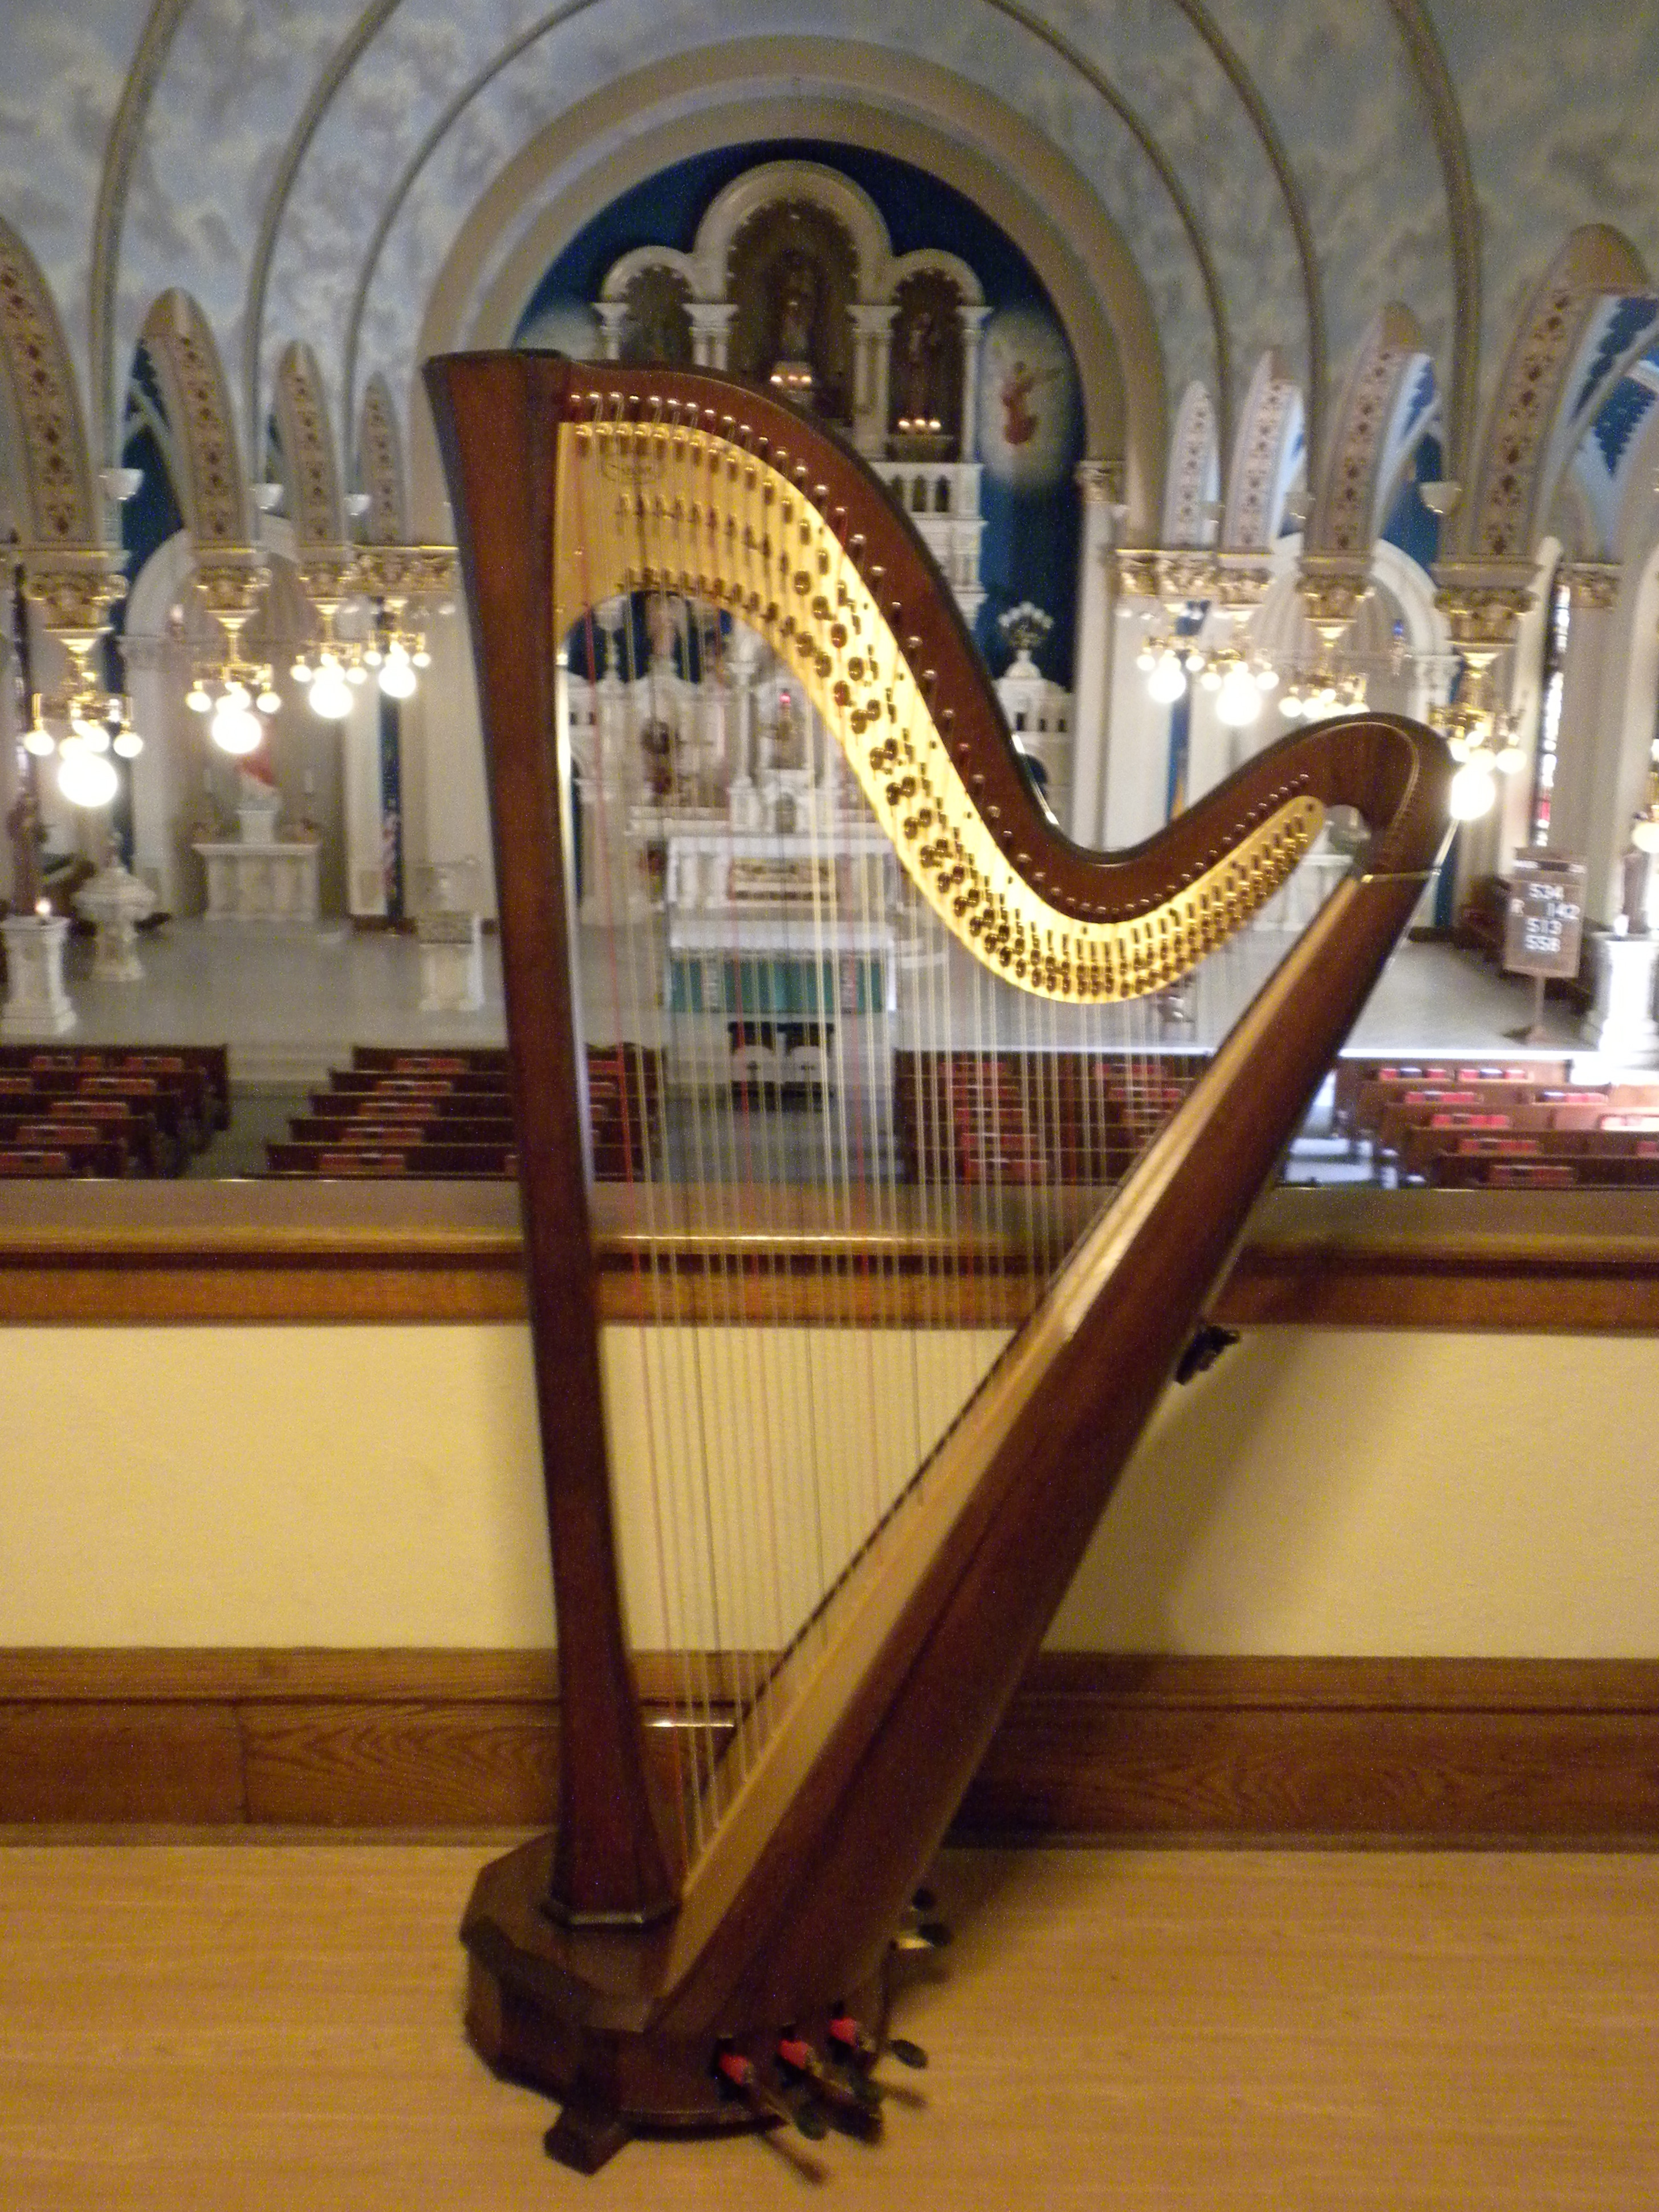 Picture of Harp in a Church